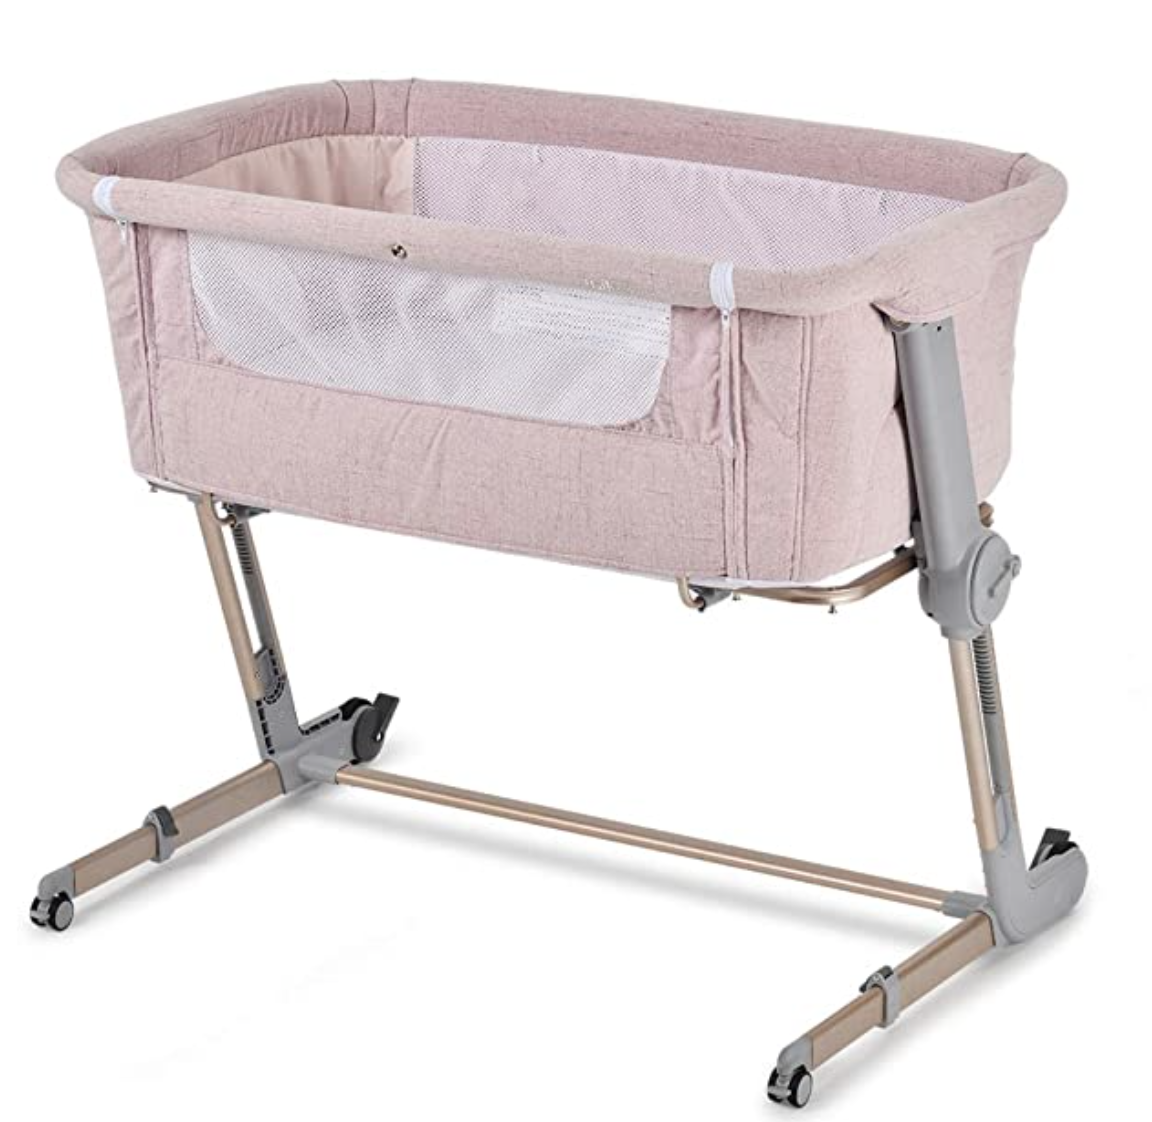 Best_Bassinet_For_C-Section_UniloveHug_Thumbnail